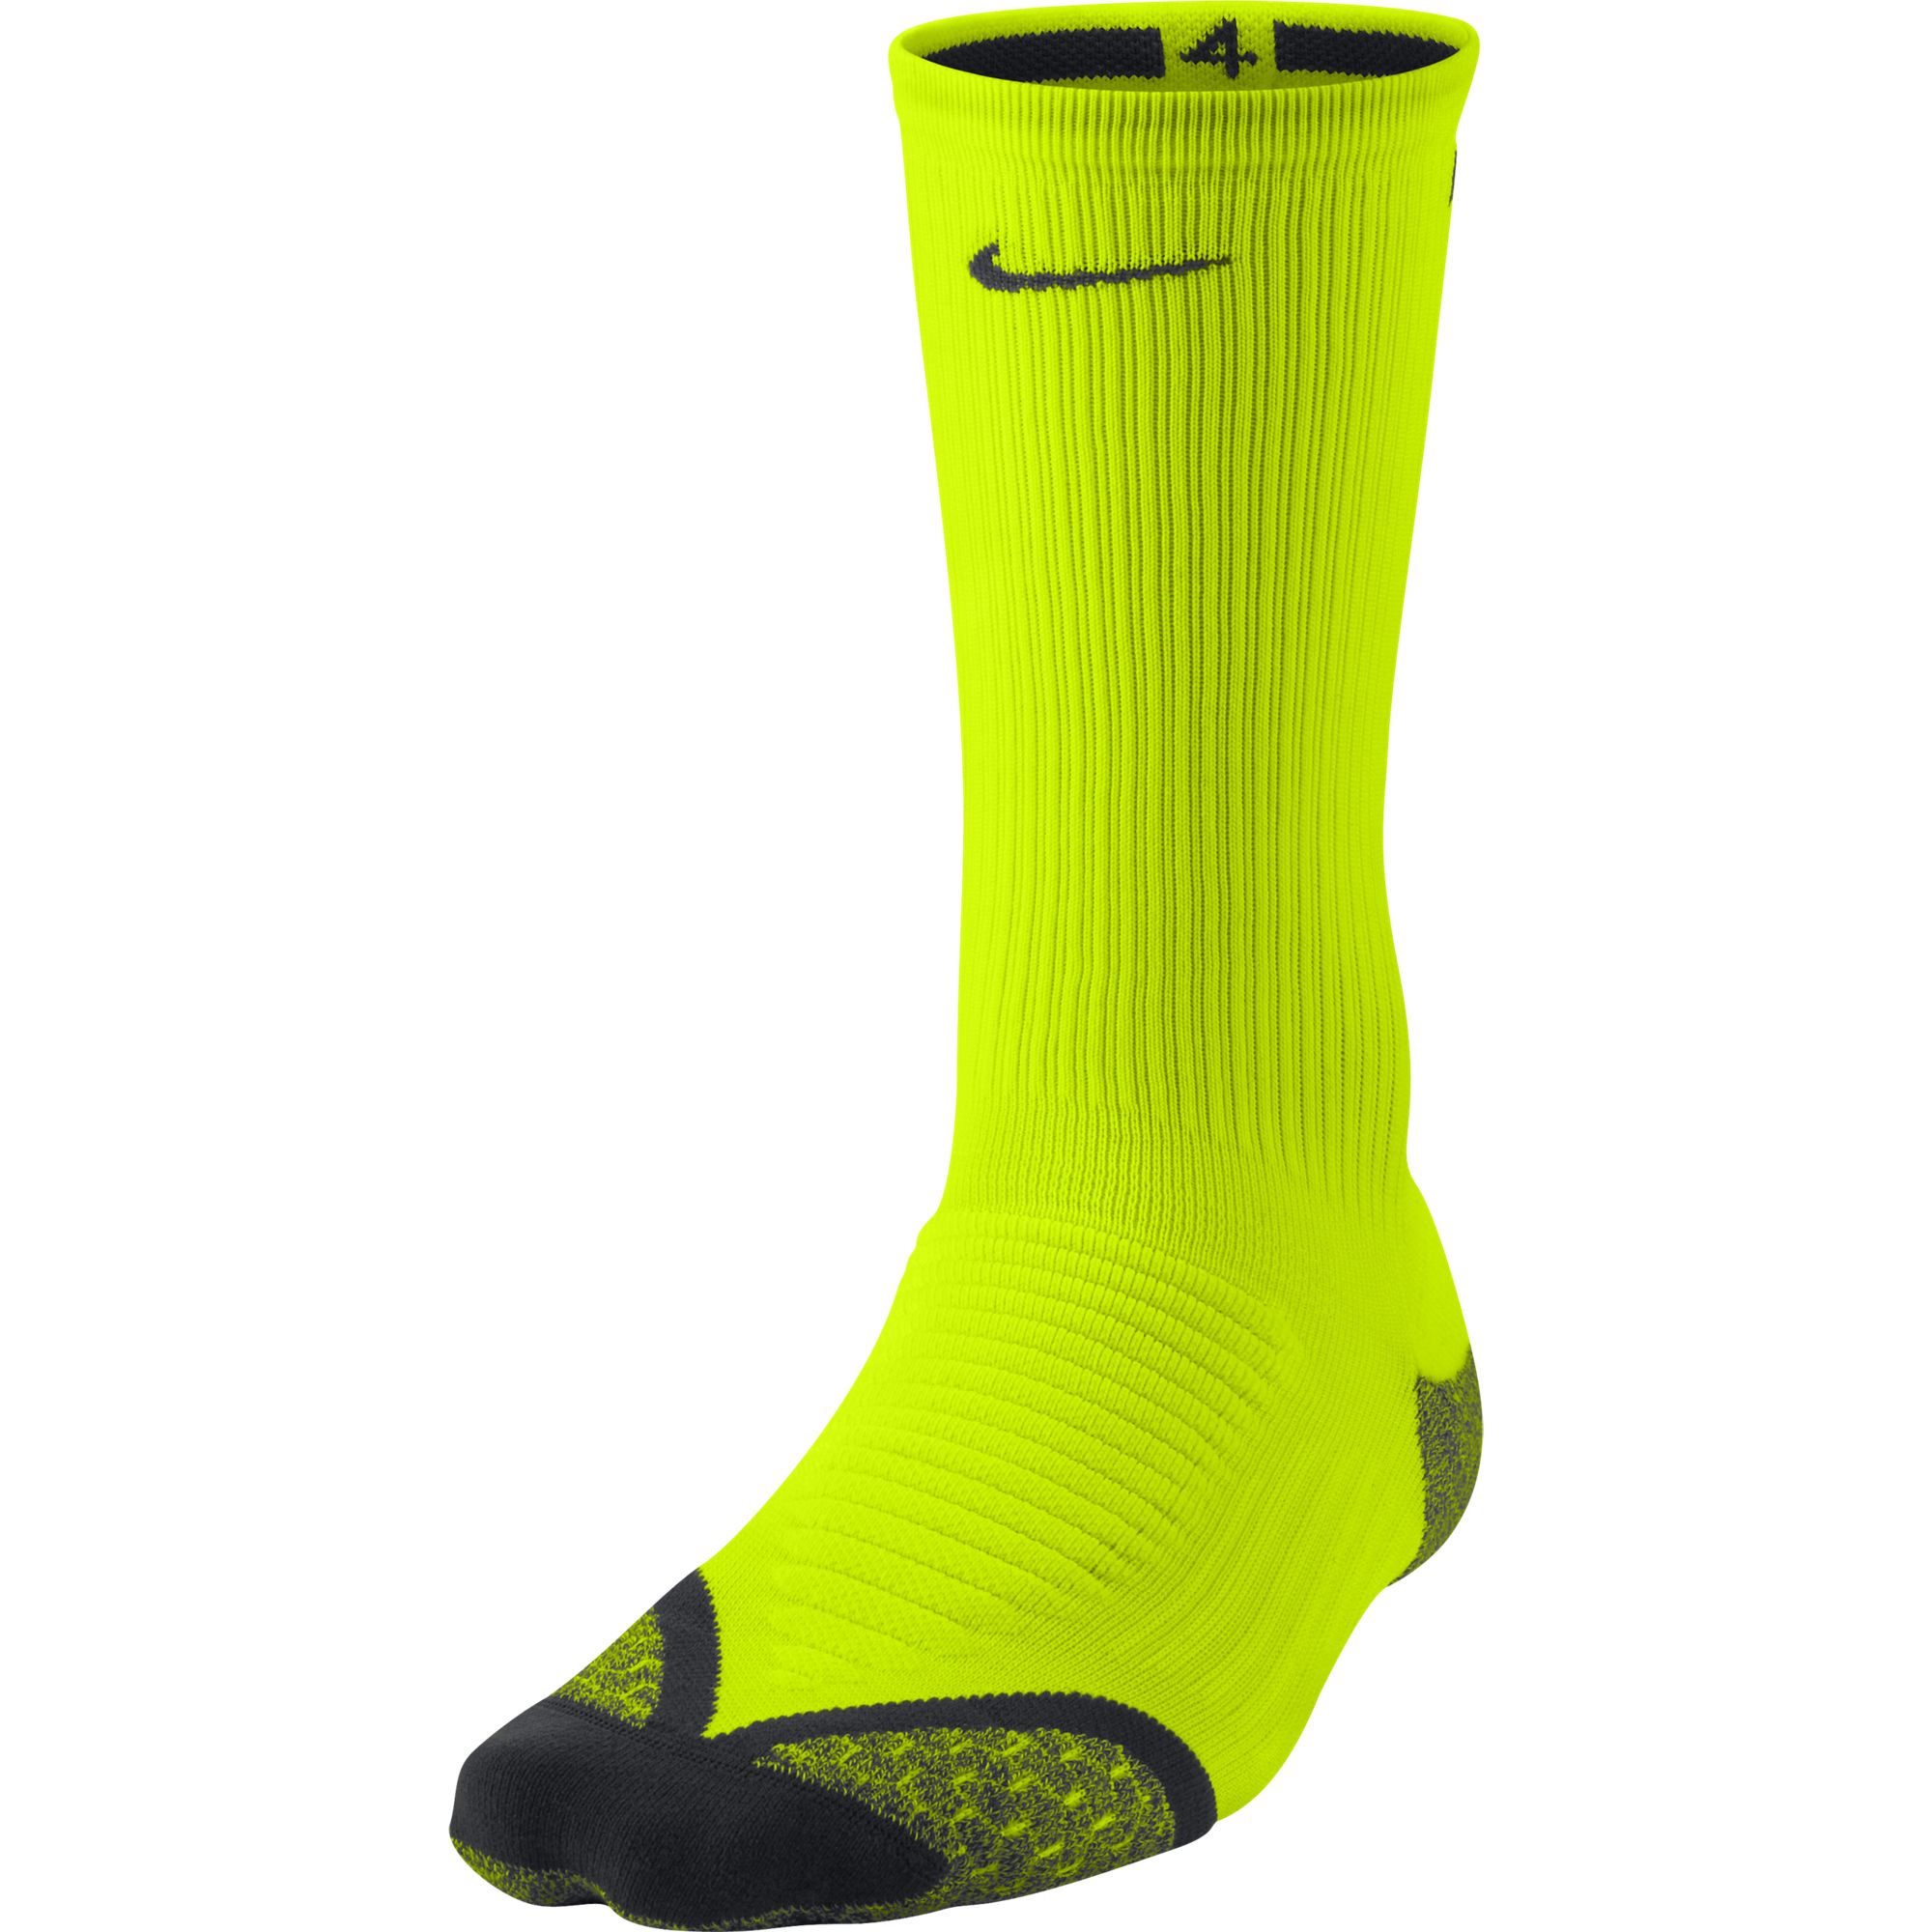 Nike Носки Nike Elite Cushioned Crew, 1 пара чулок д щитков nike guard lock elite sleeve su12 se0173 011 s чёрный